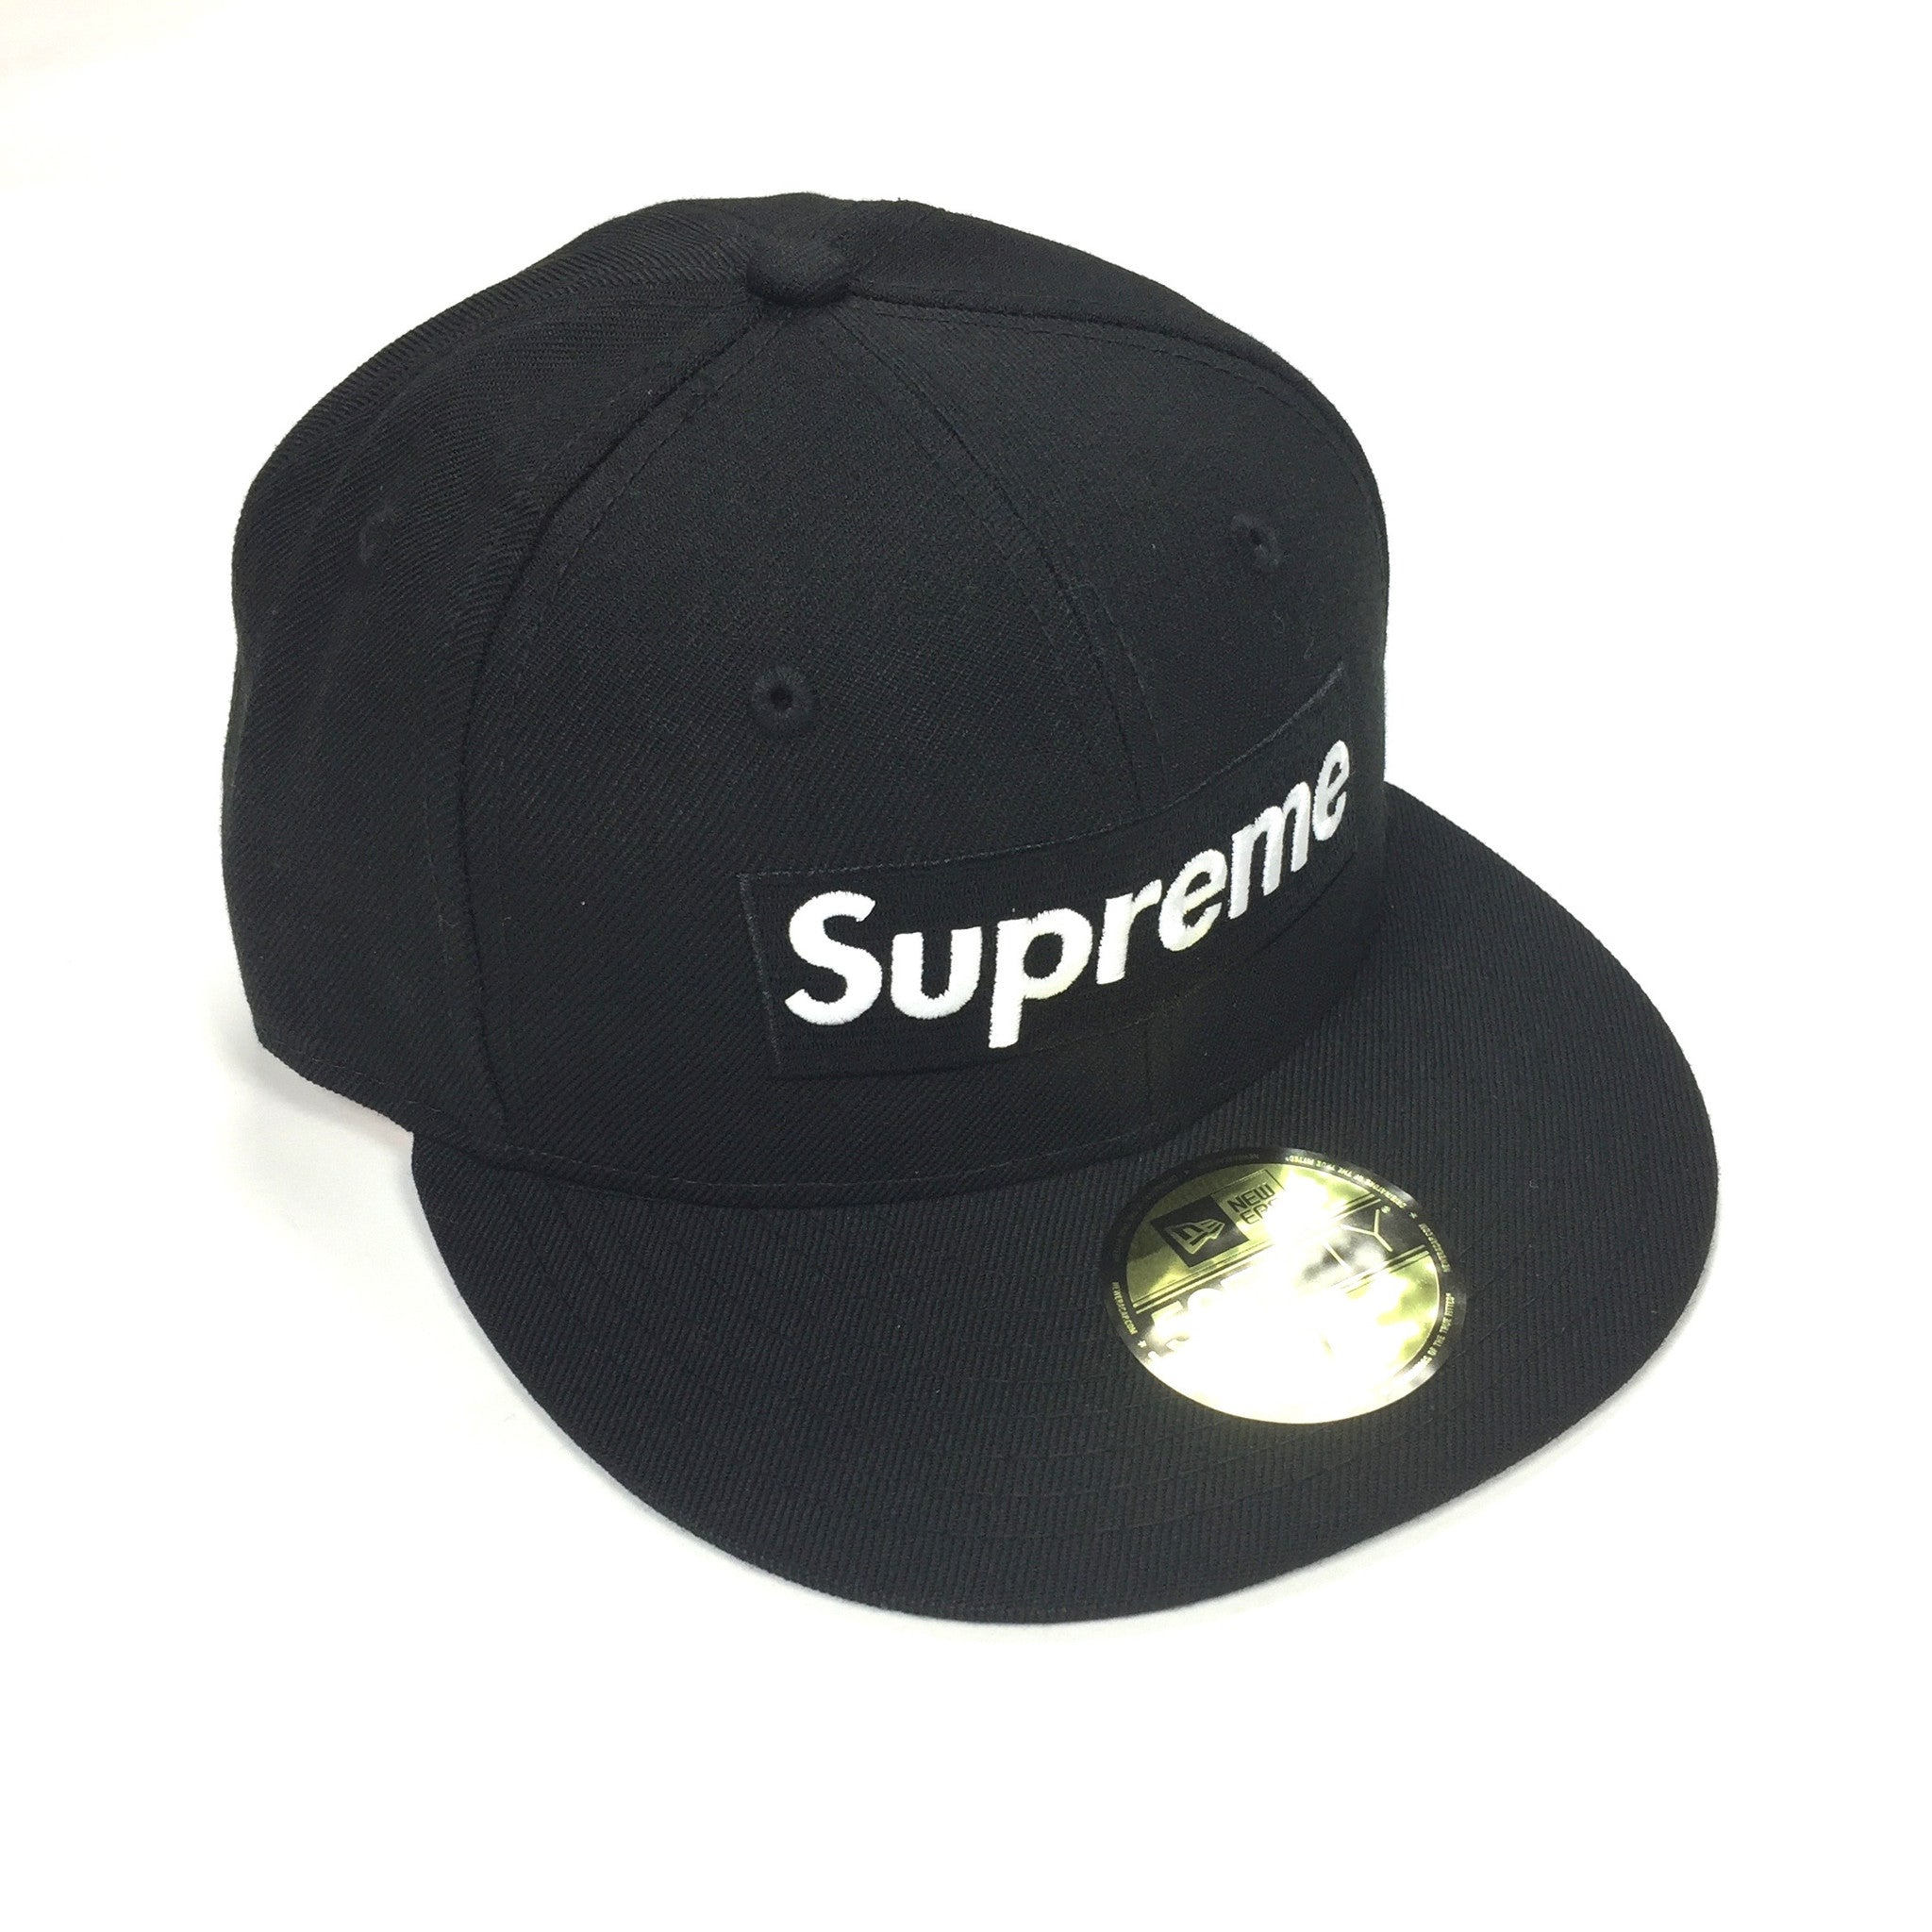 ab5618feffb98 Supreme x New Era - SS17 Red Box Logo Piping Fitted 59FIFTY Hat ...